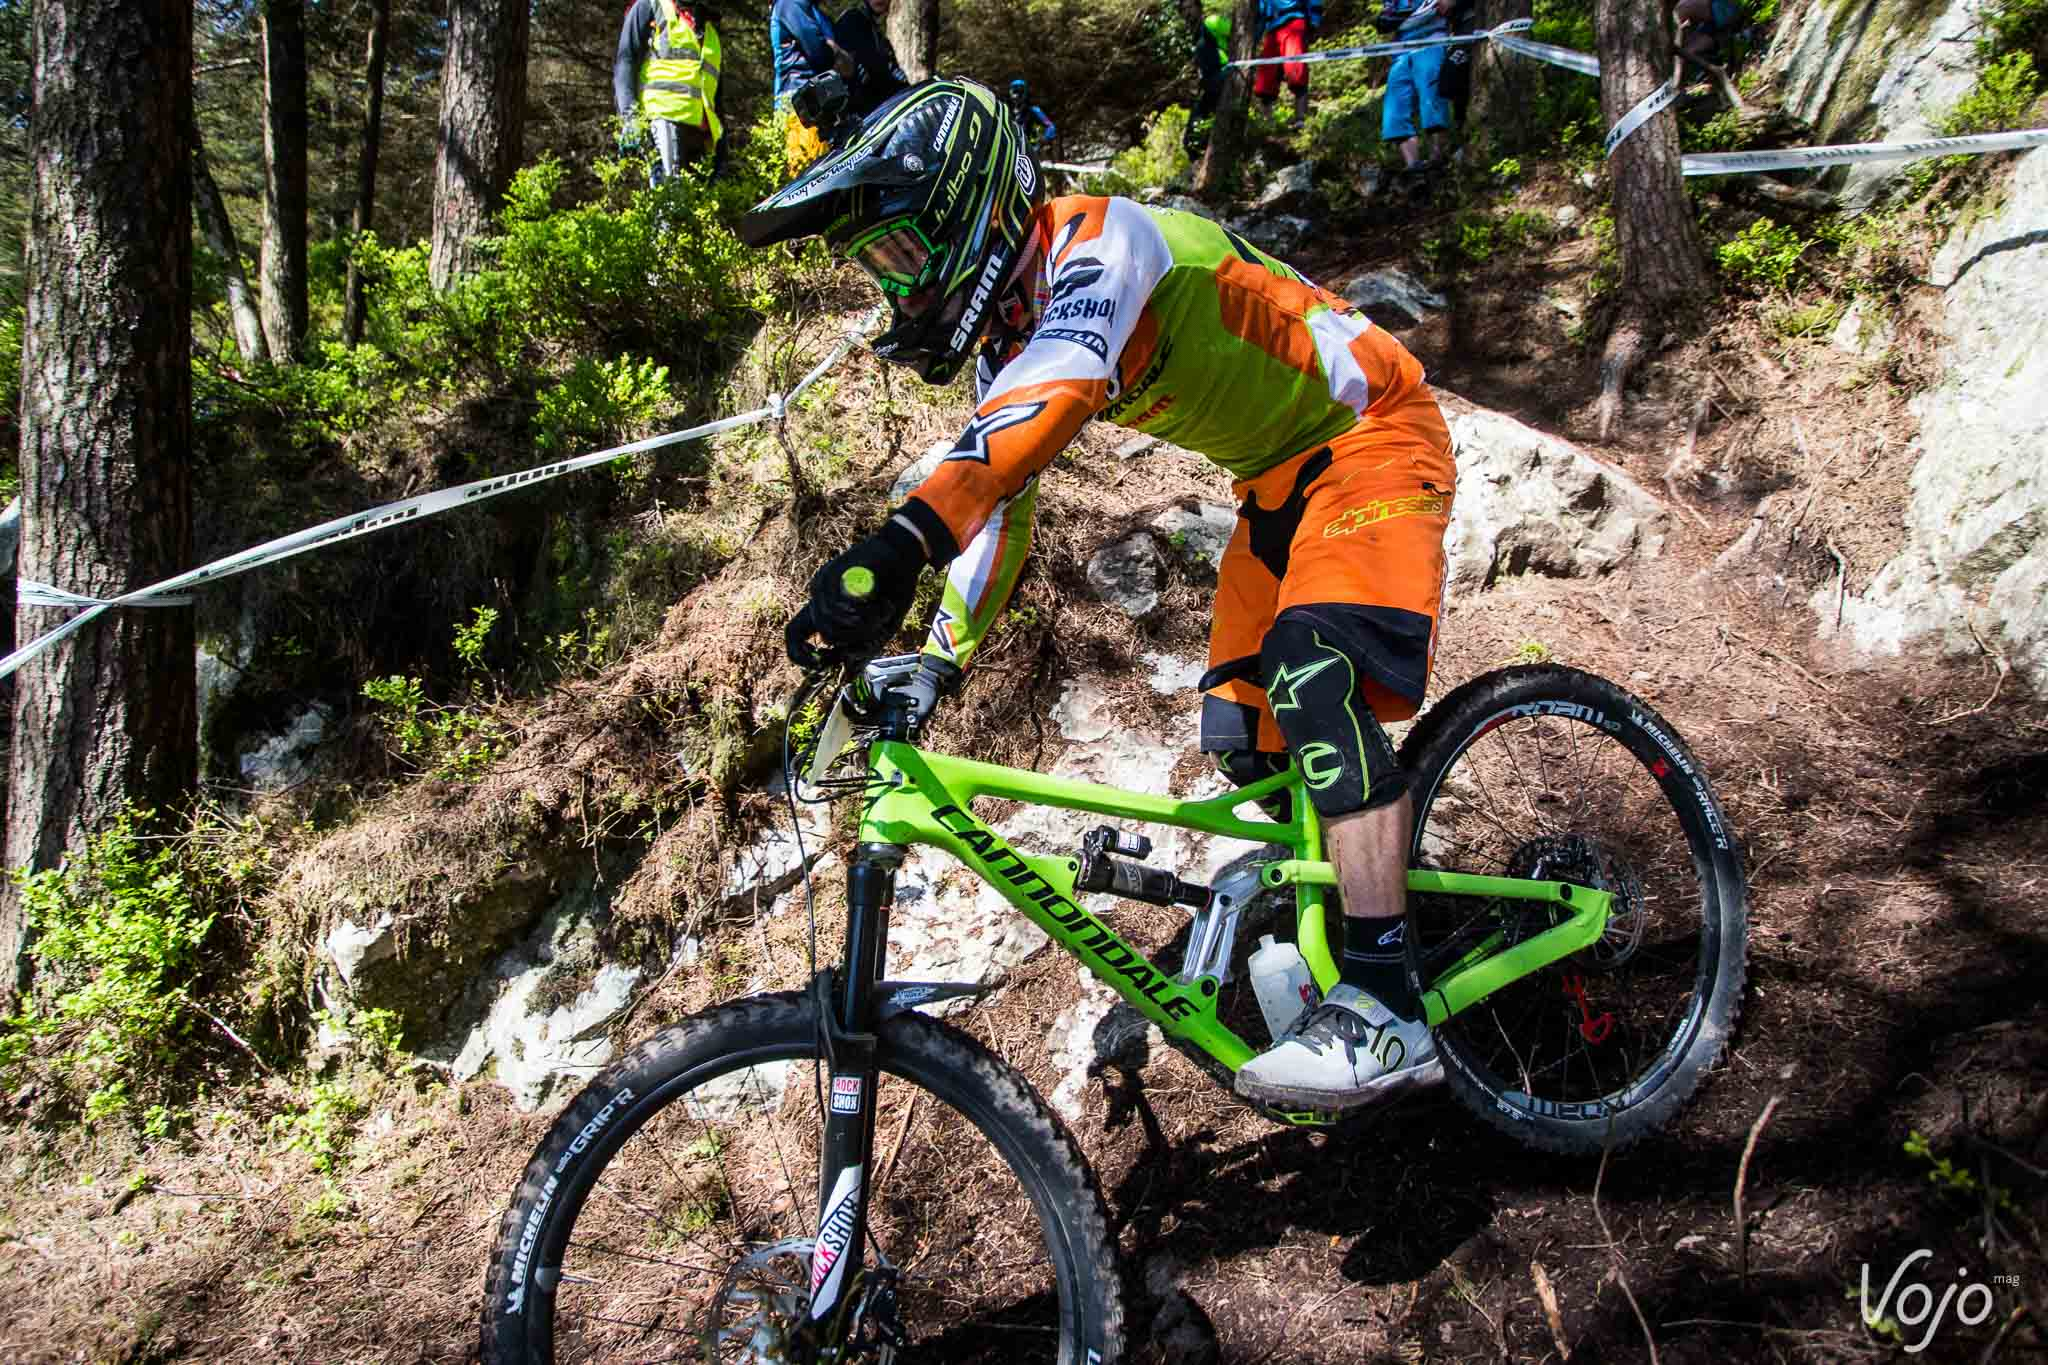 Cannondale_Jekyll_prototype_2017_Jerome_Clementz_Copyright_Reuiller_VojoMag-6